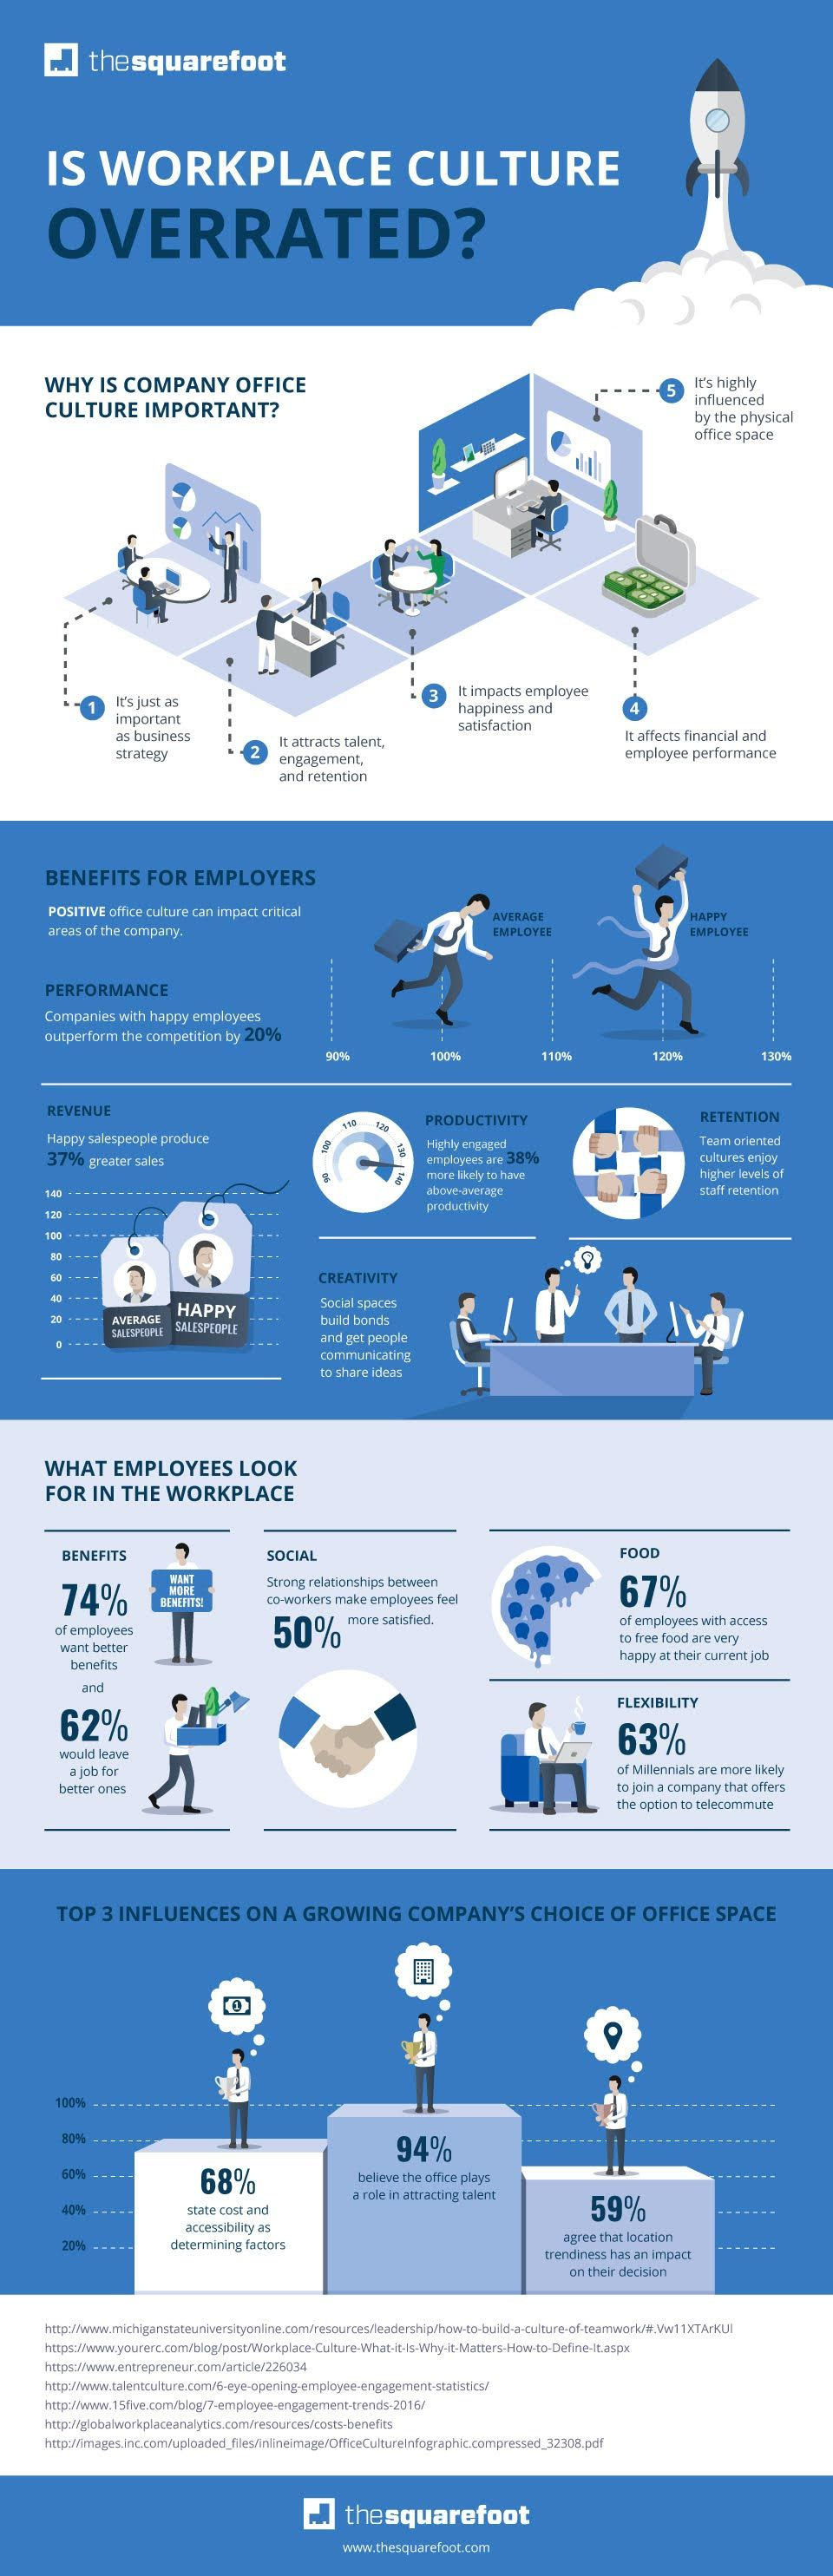 20160520053412-workplace-culture-infographic